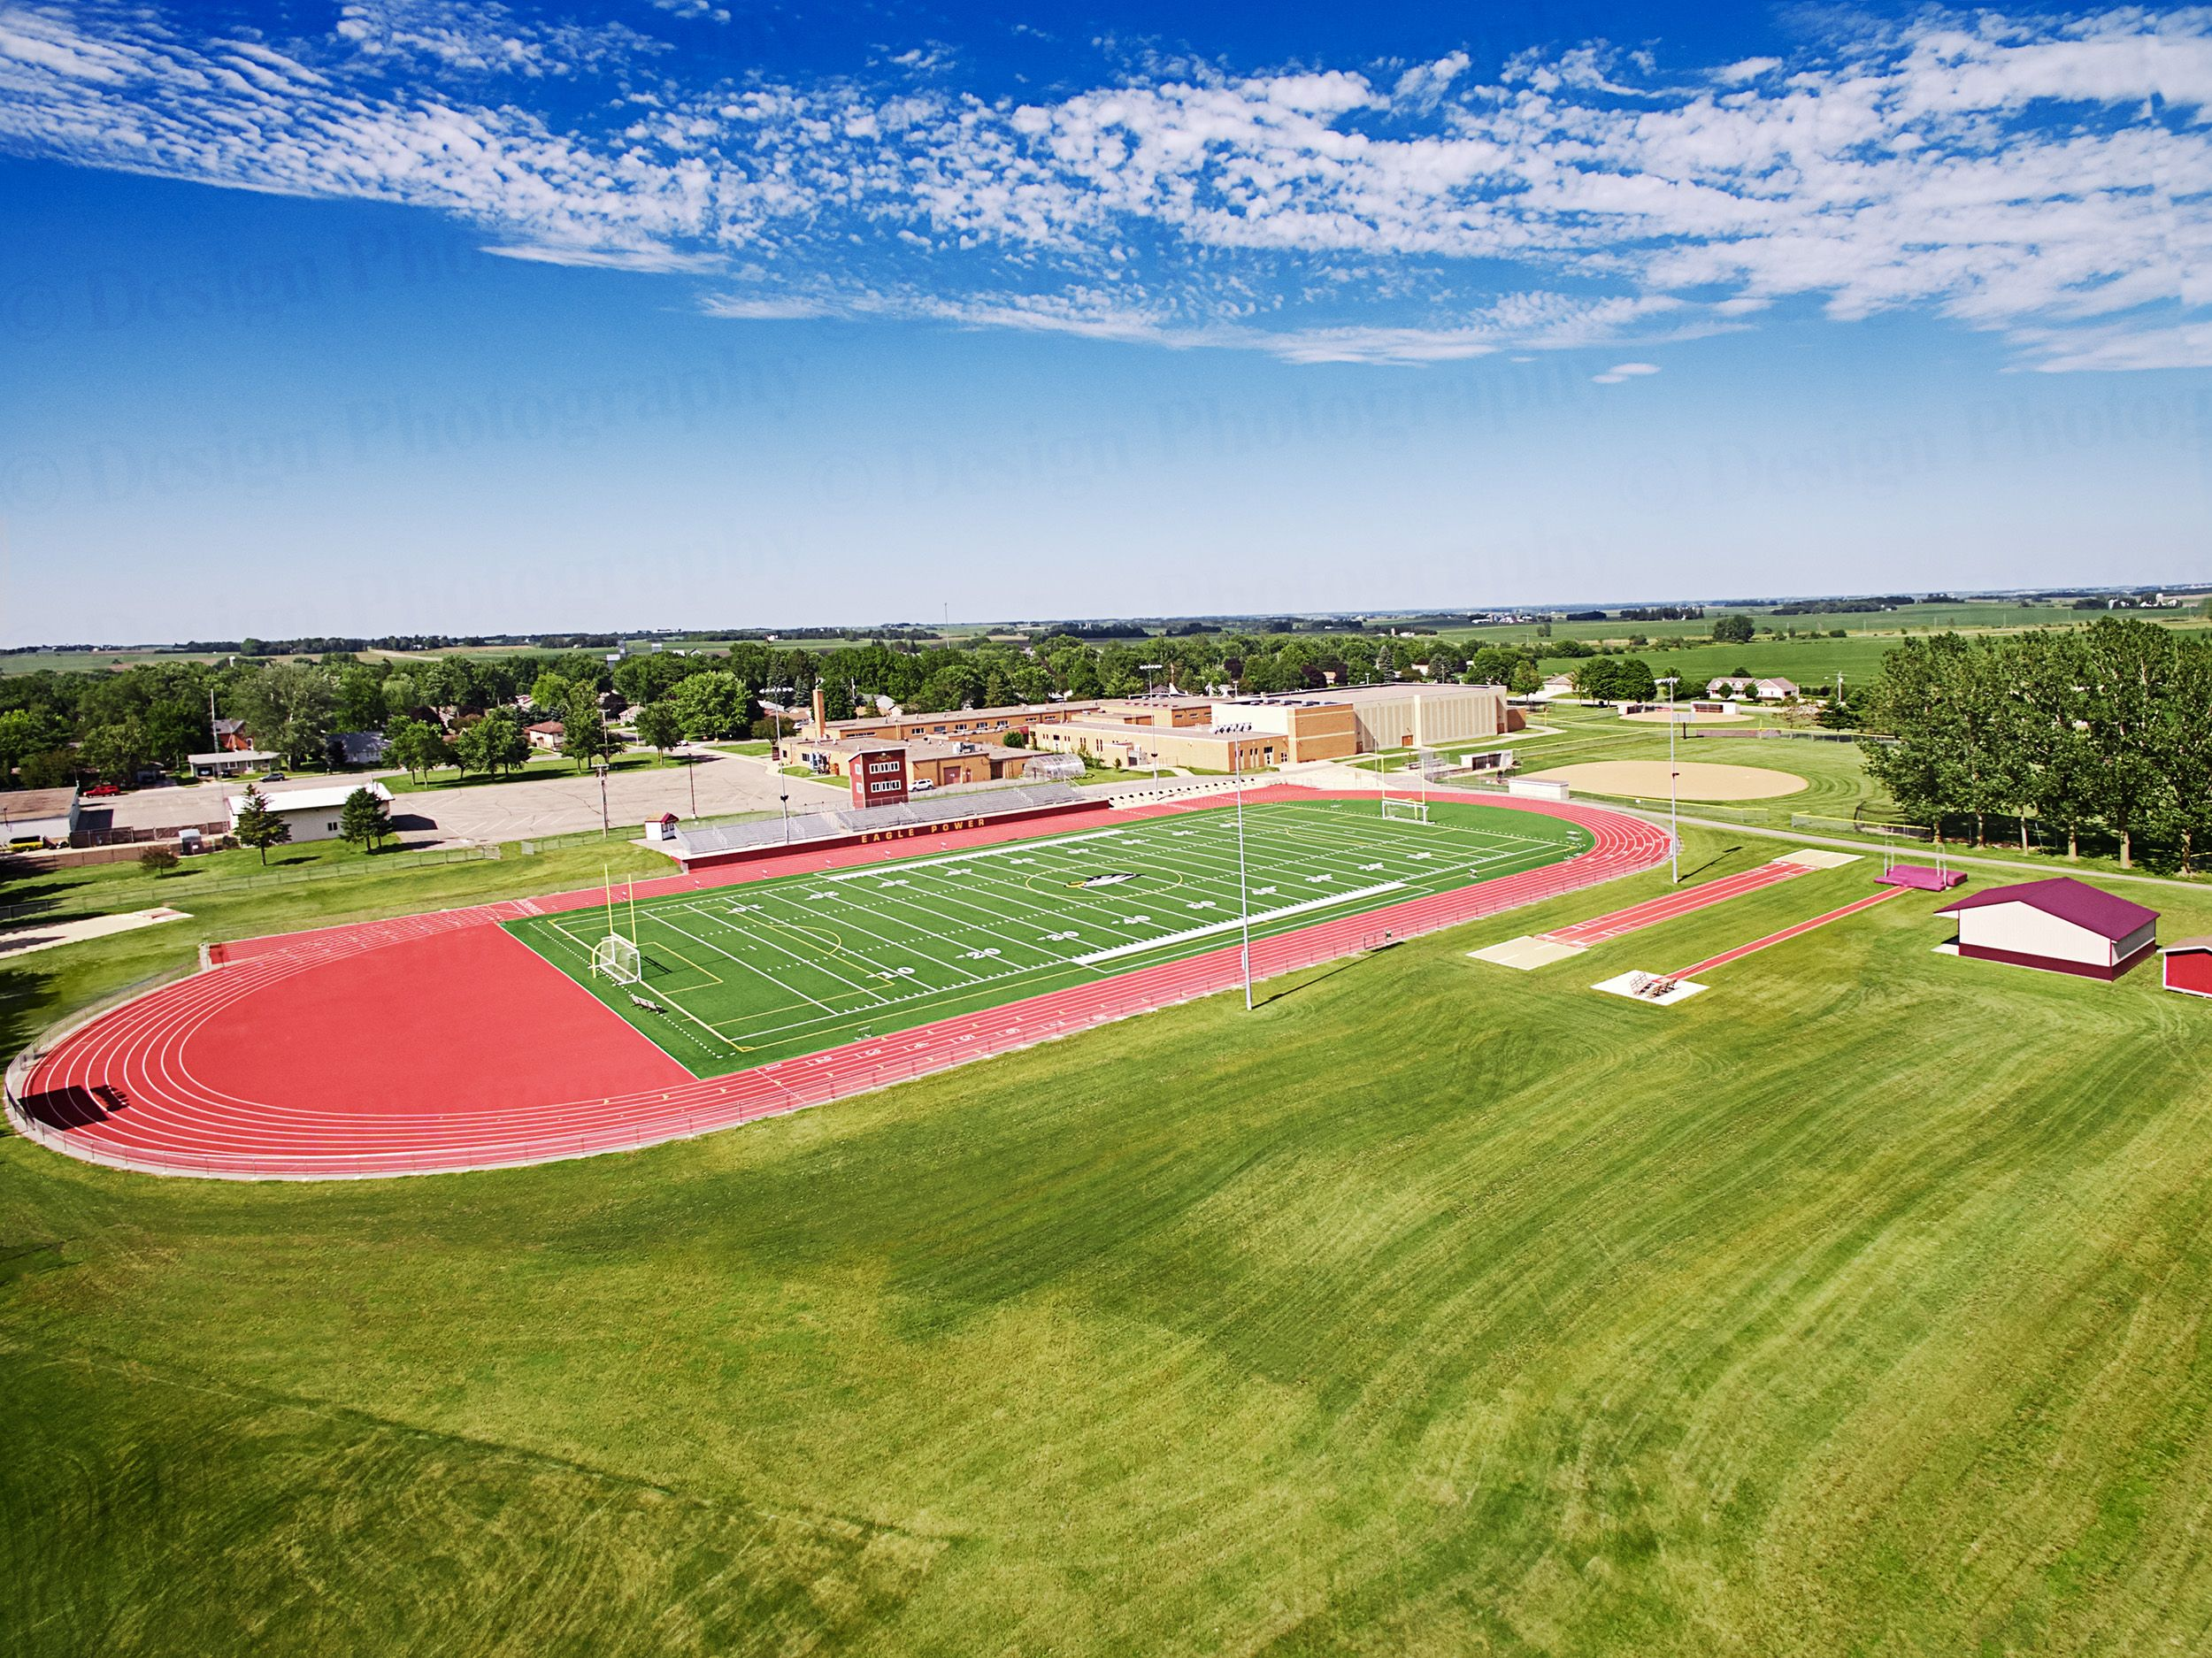 Aerial photograph of high school football field